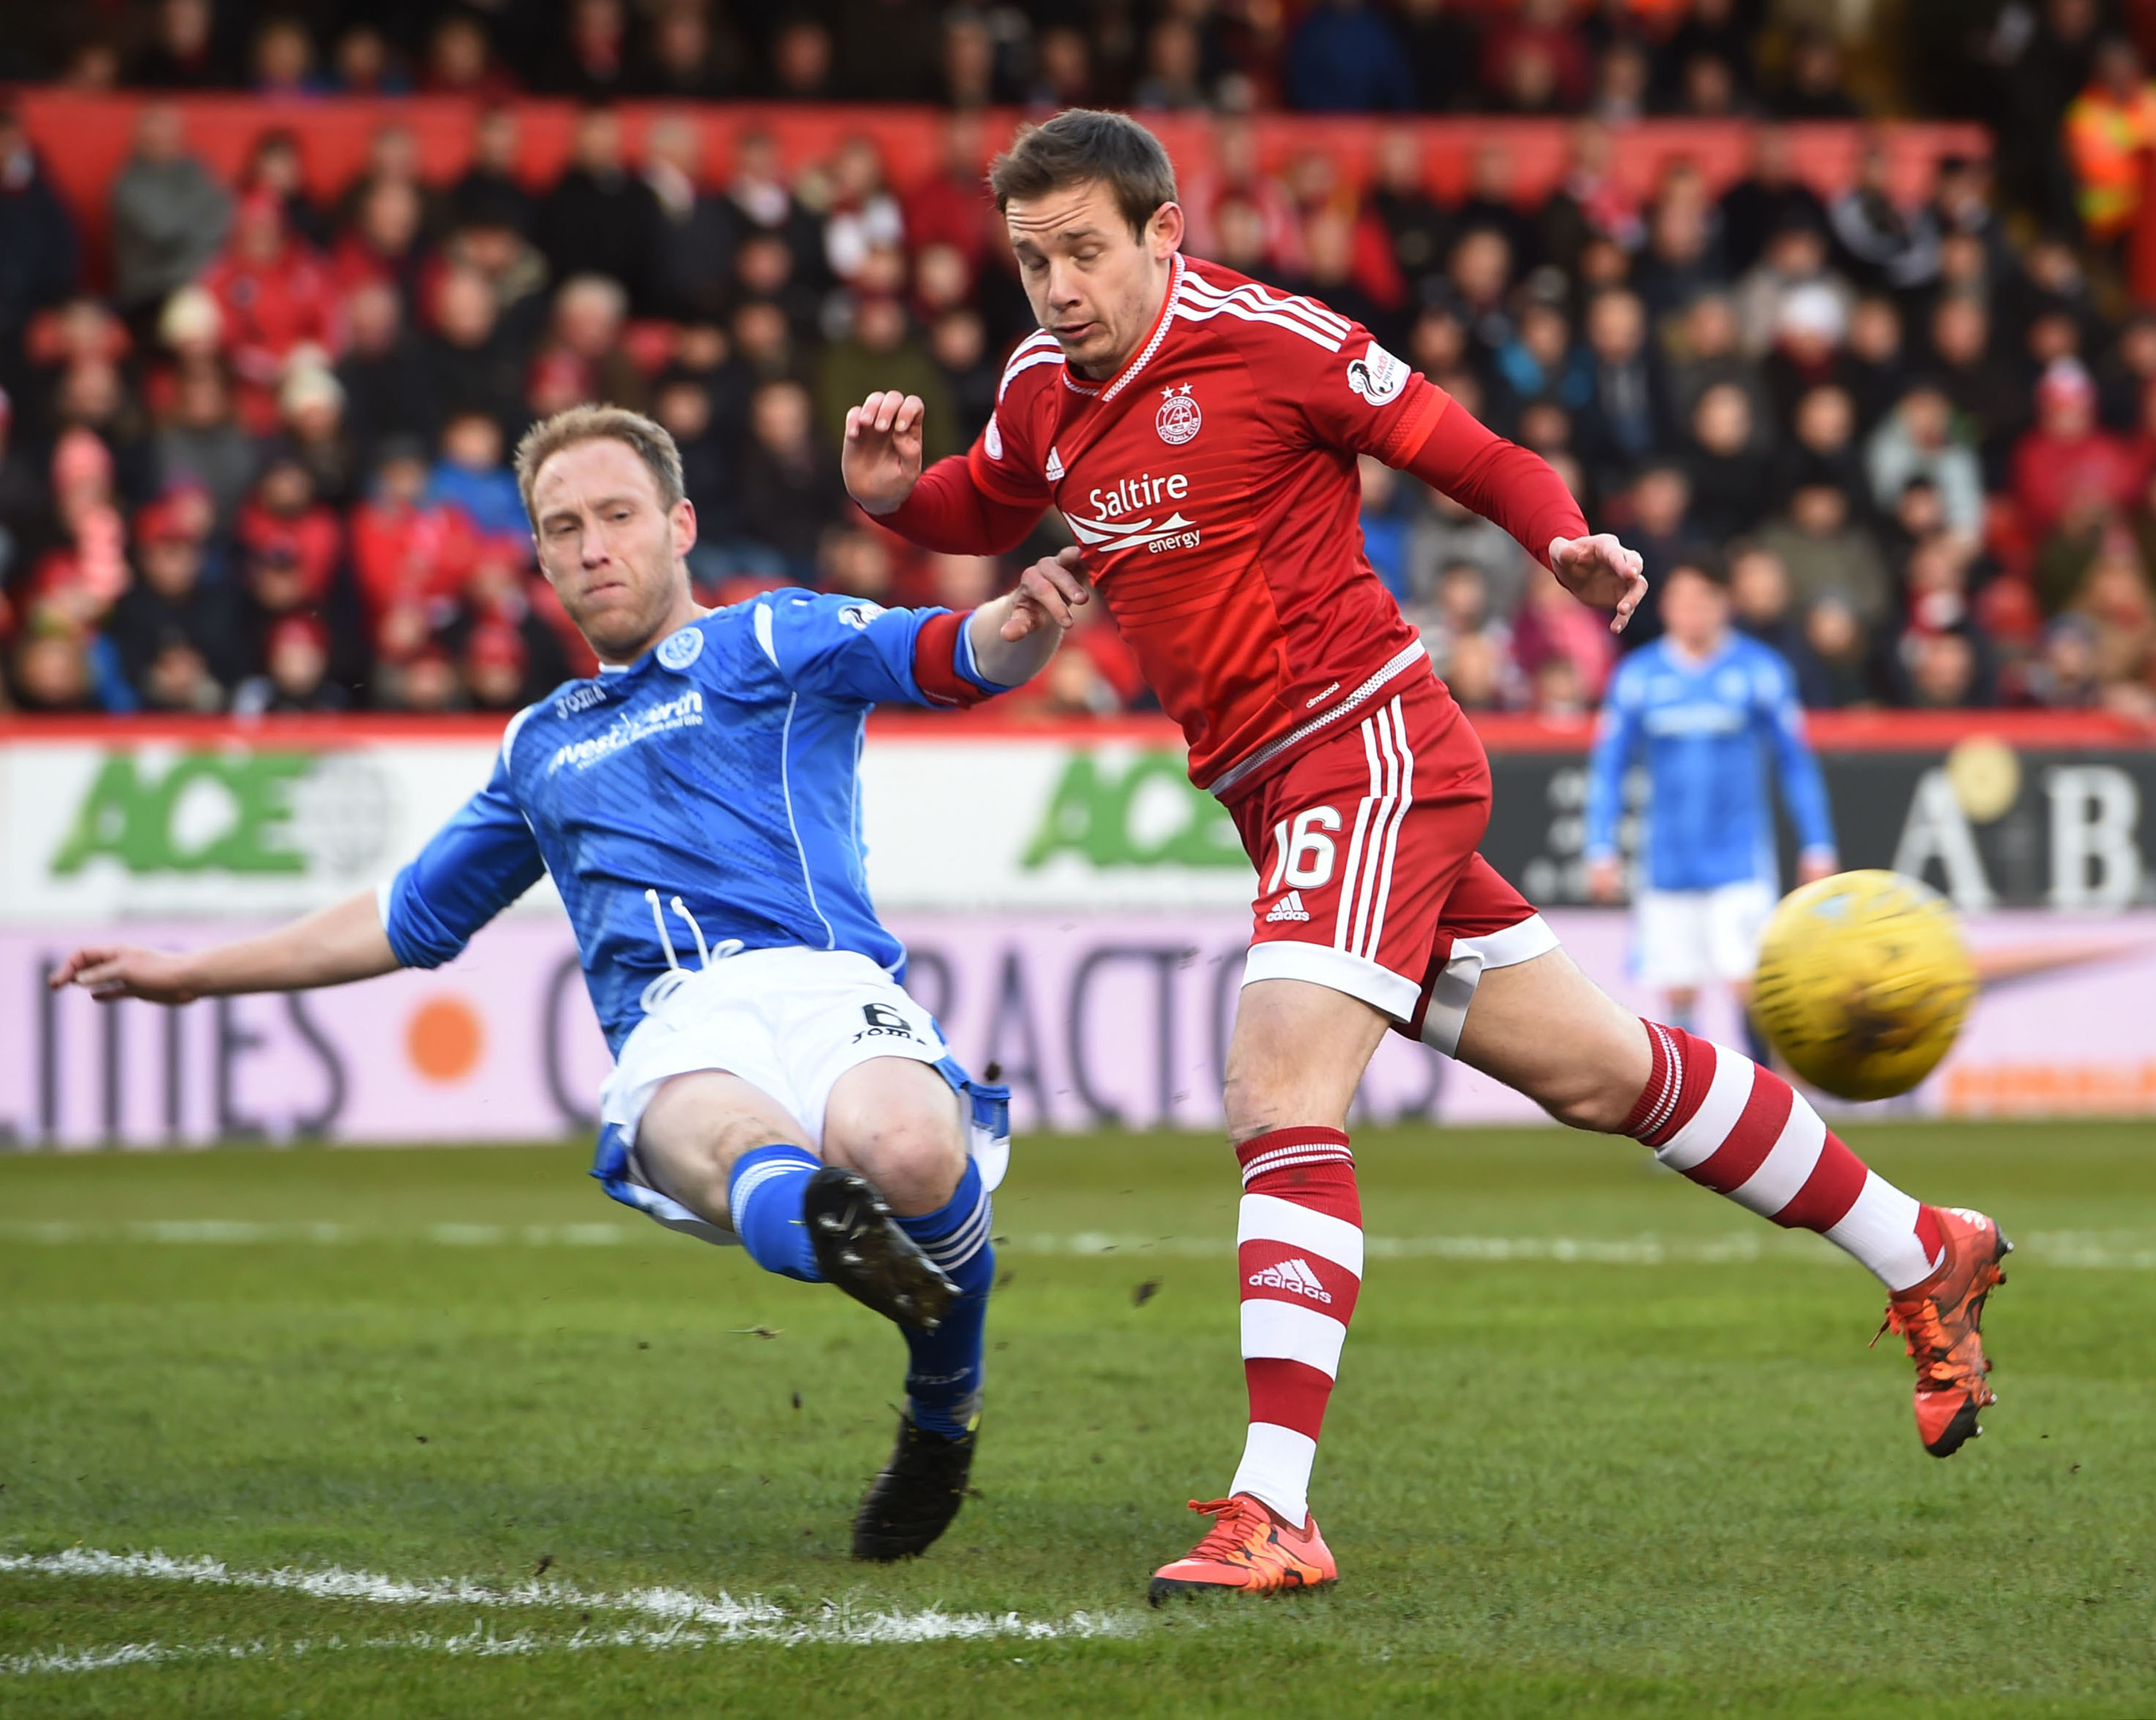 Steven Anderson in action against Aberdeen.